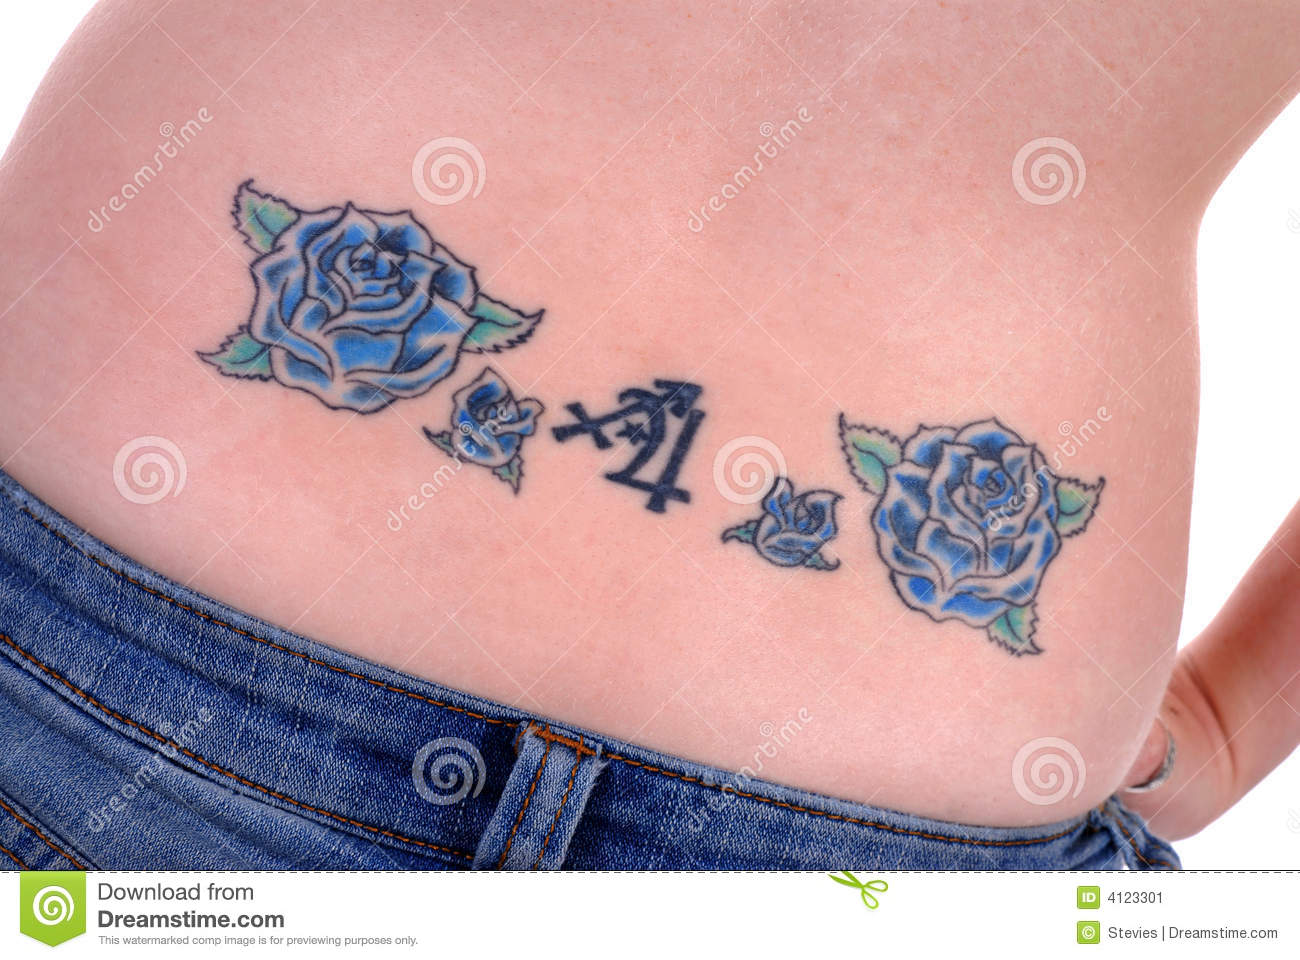 Back tattoo stock image image 4123301 for 1997 tattoo designs